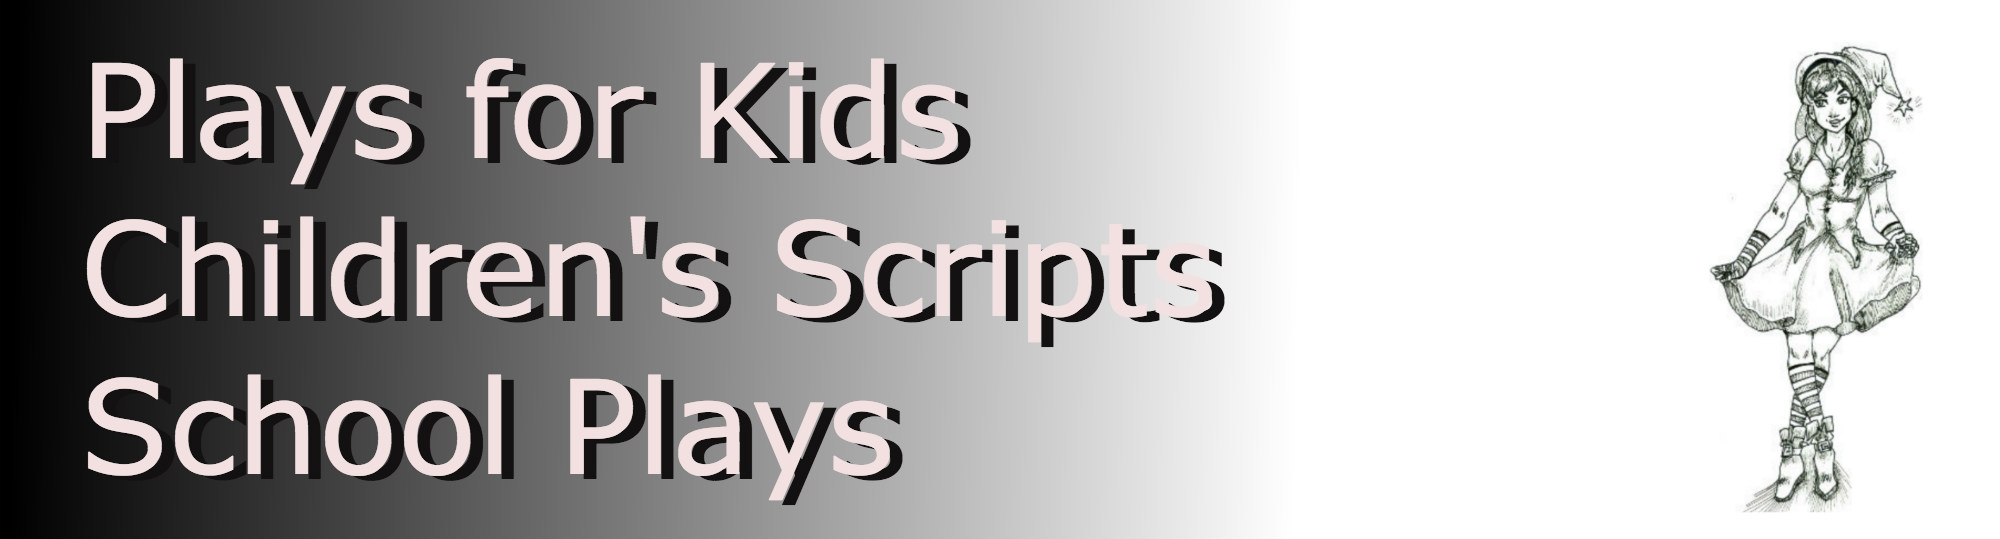 Christmas Plays For Kids.Free Stage Plays At Free Drama Scripts For School And